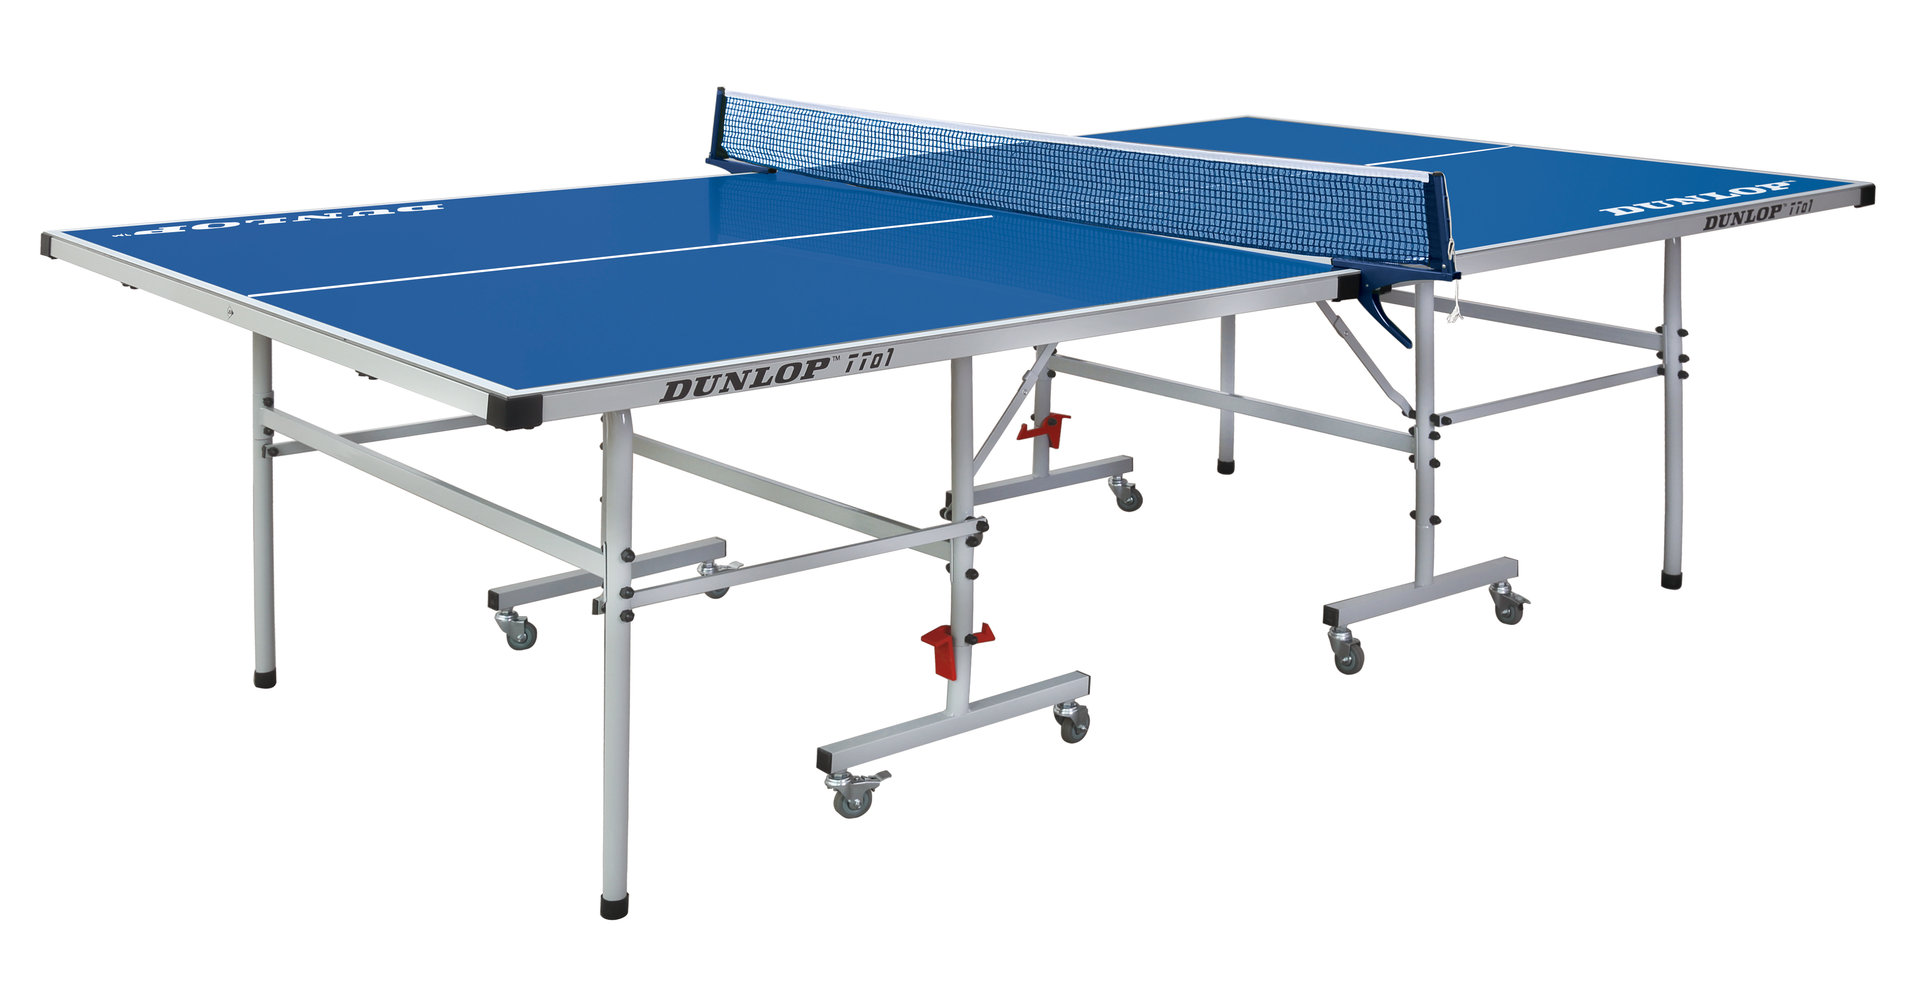 Dunlop tto1 full size outdoor table tennis table in blue - Full size table tennis table dimensions ...